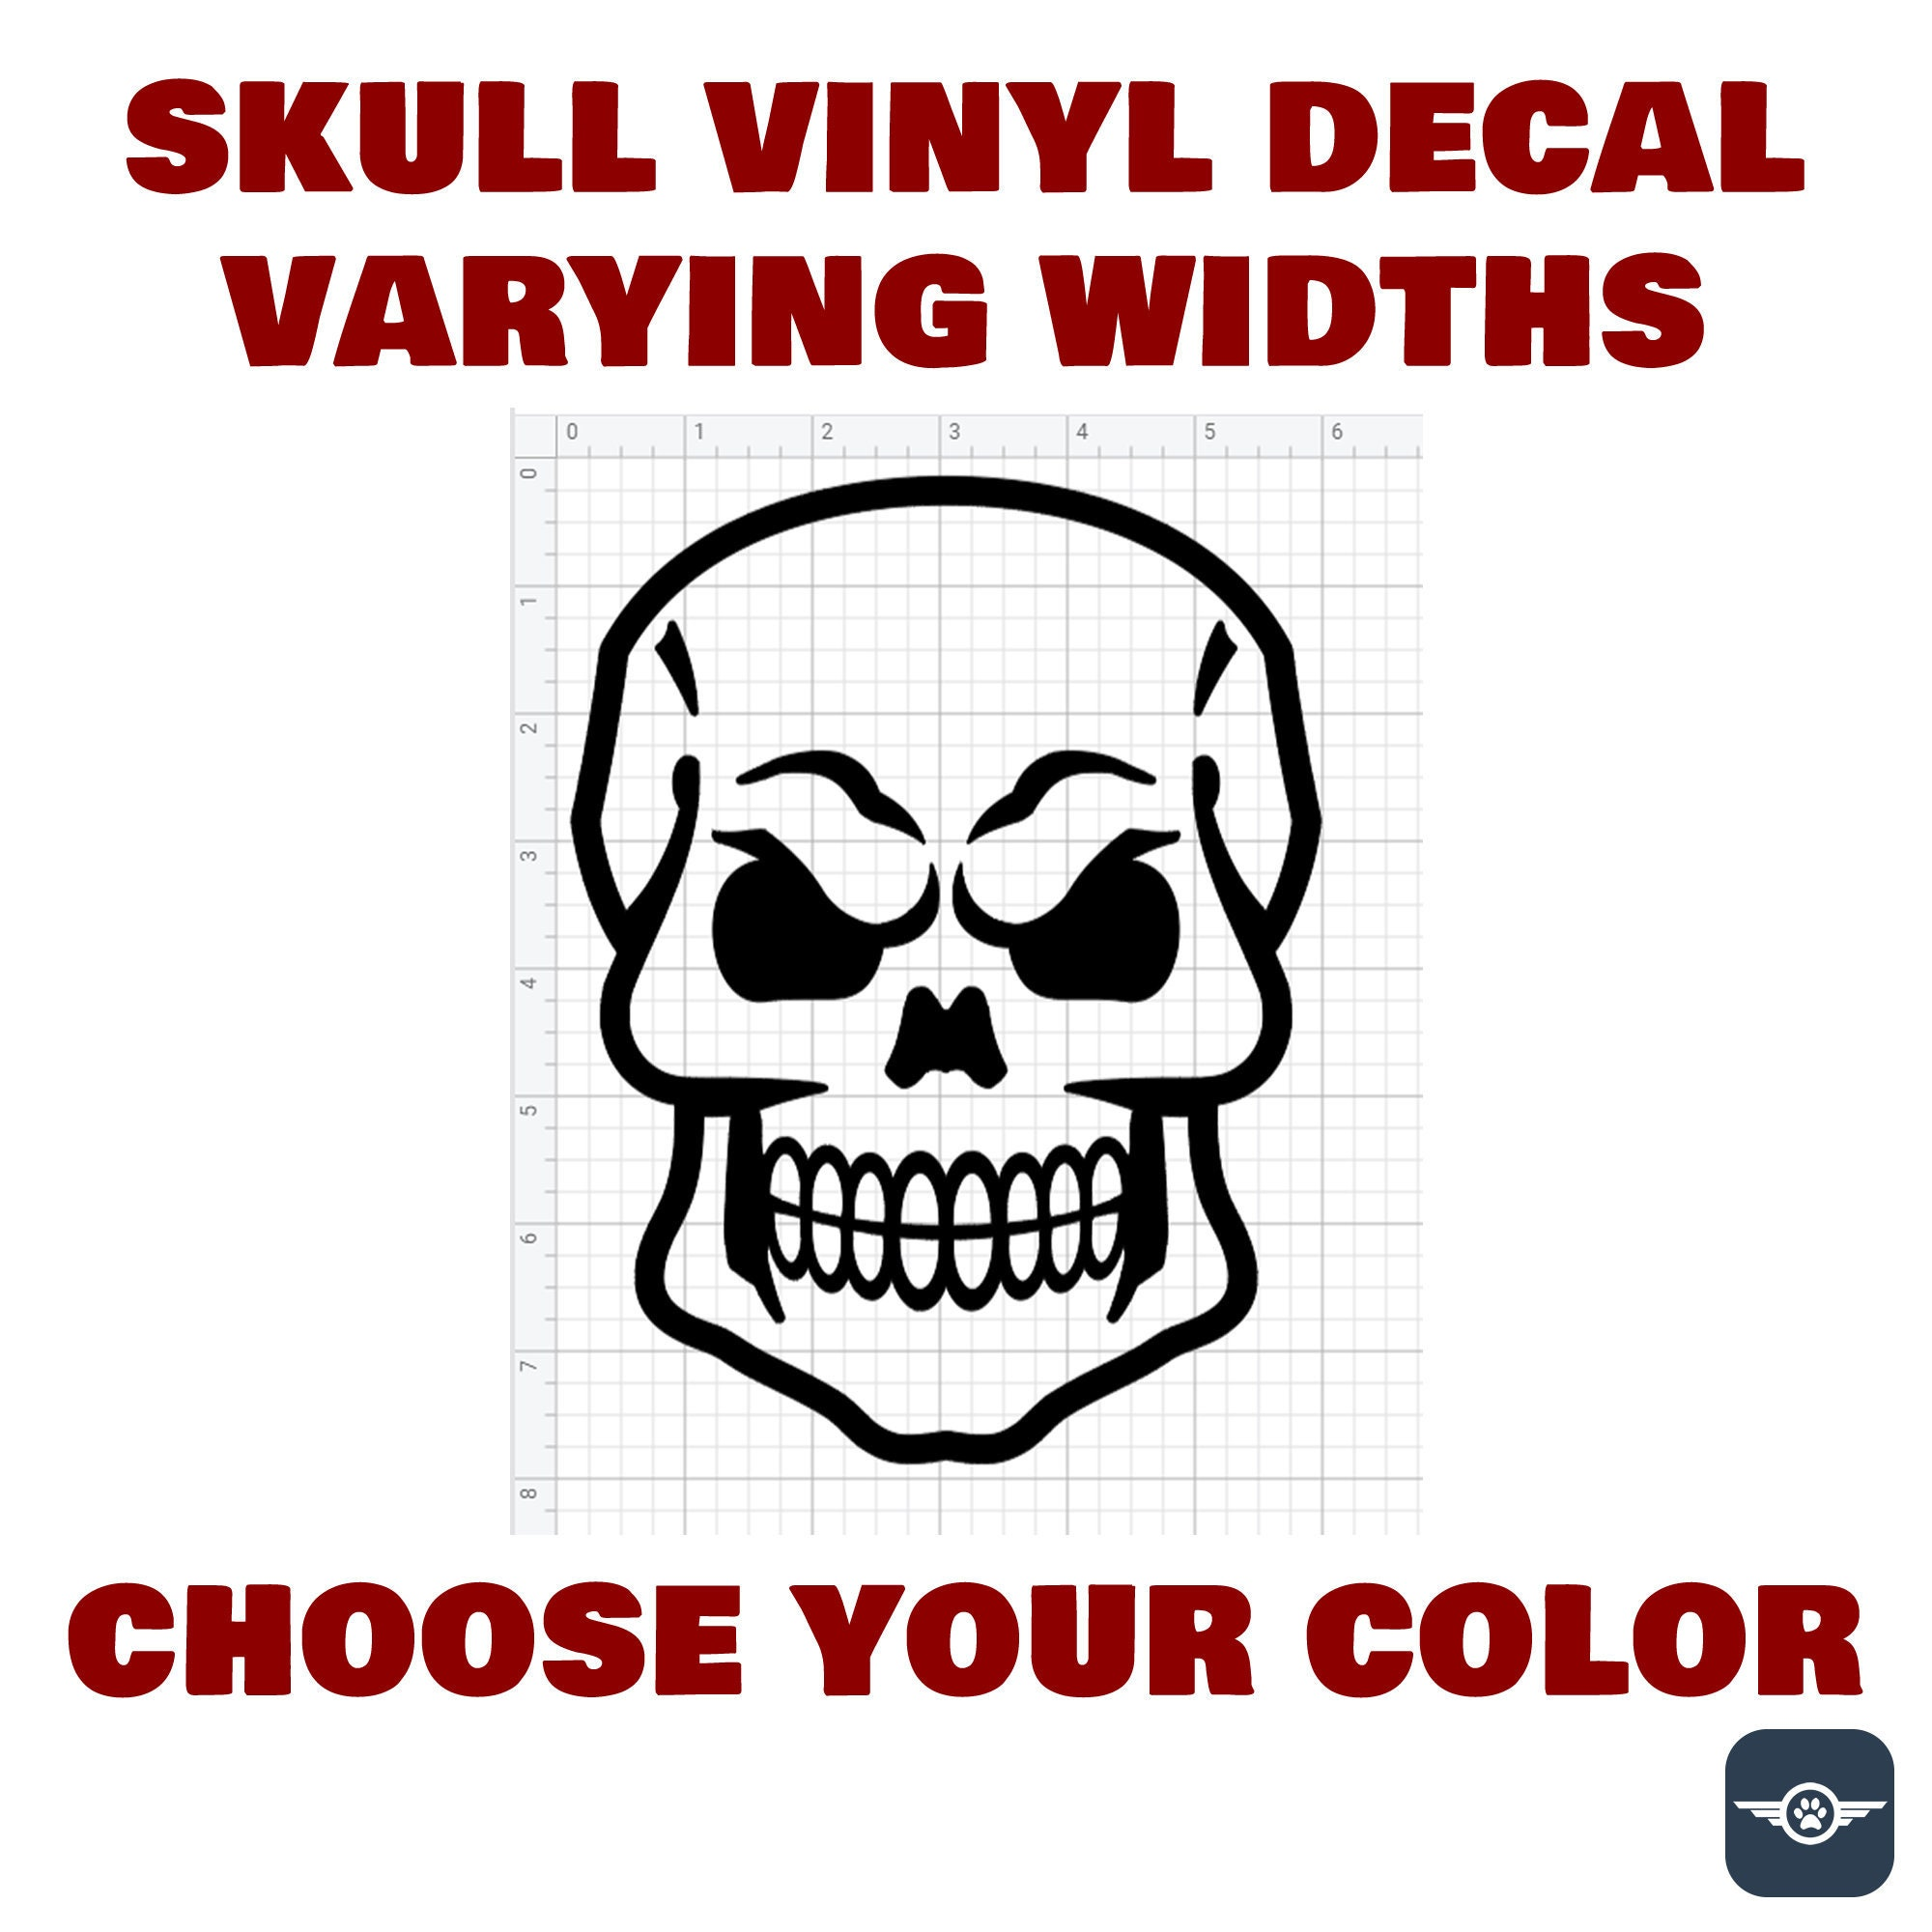 CAD$8.49 - Skull Die Cut Vinyl Decal also in CHROME various colors and sizes available